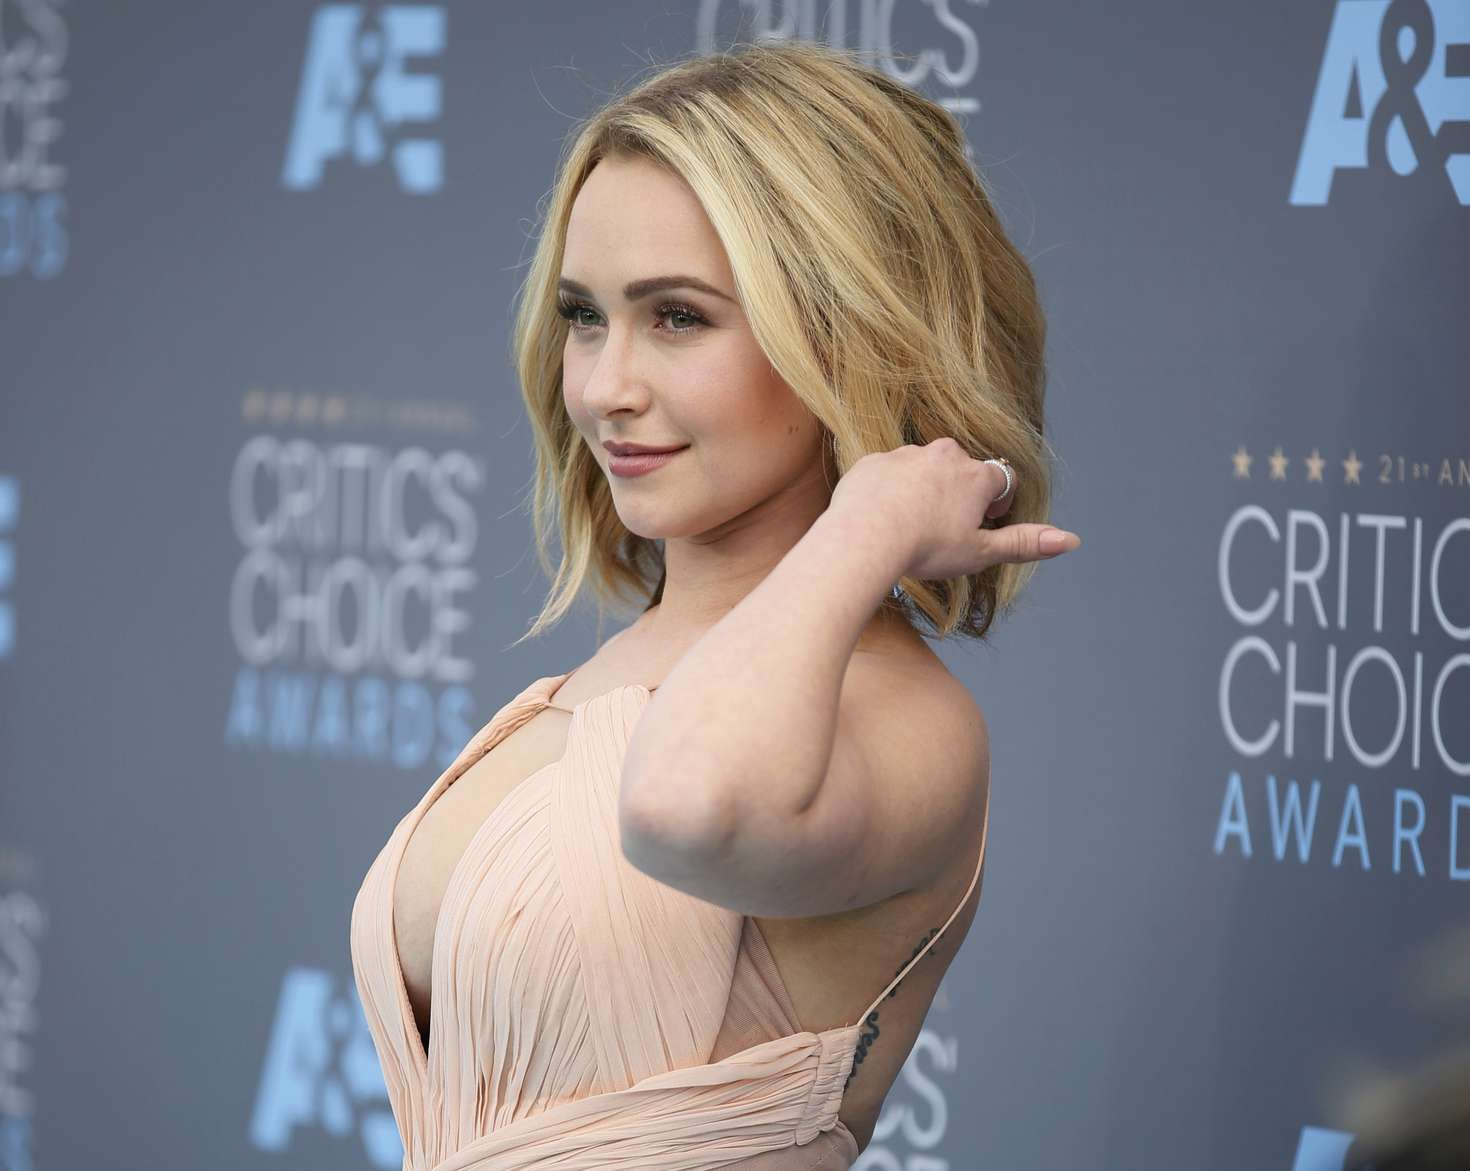 hayden panettiere picture thread #3 | celebrity and sports forum